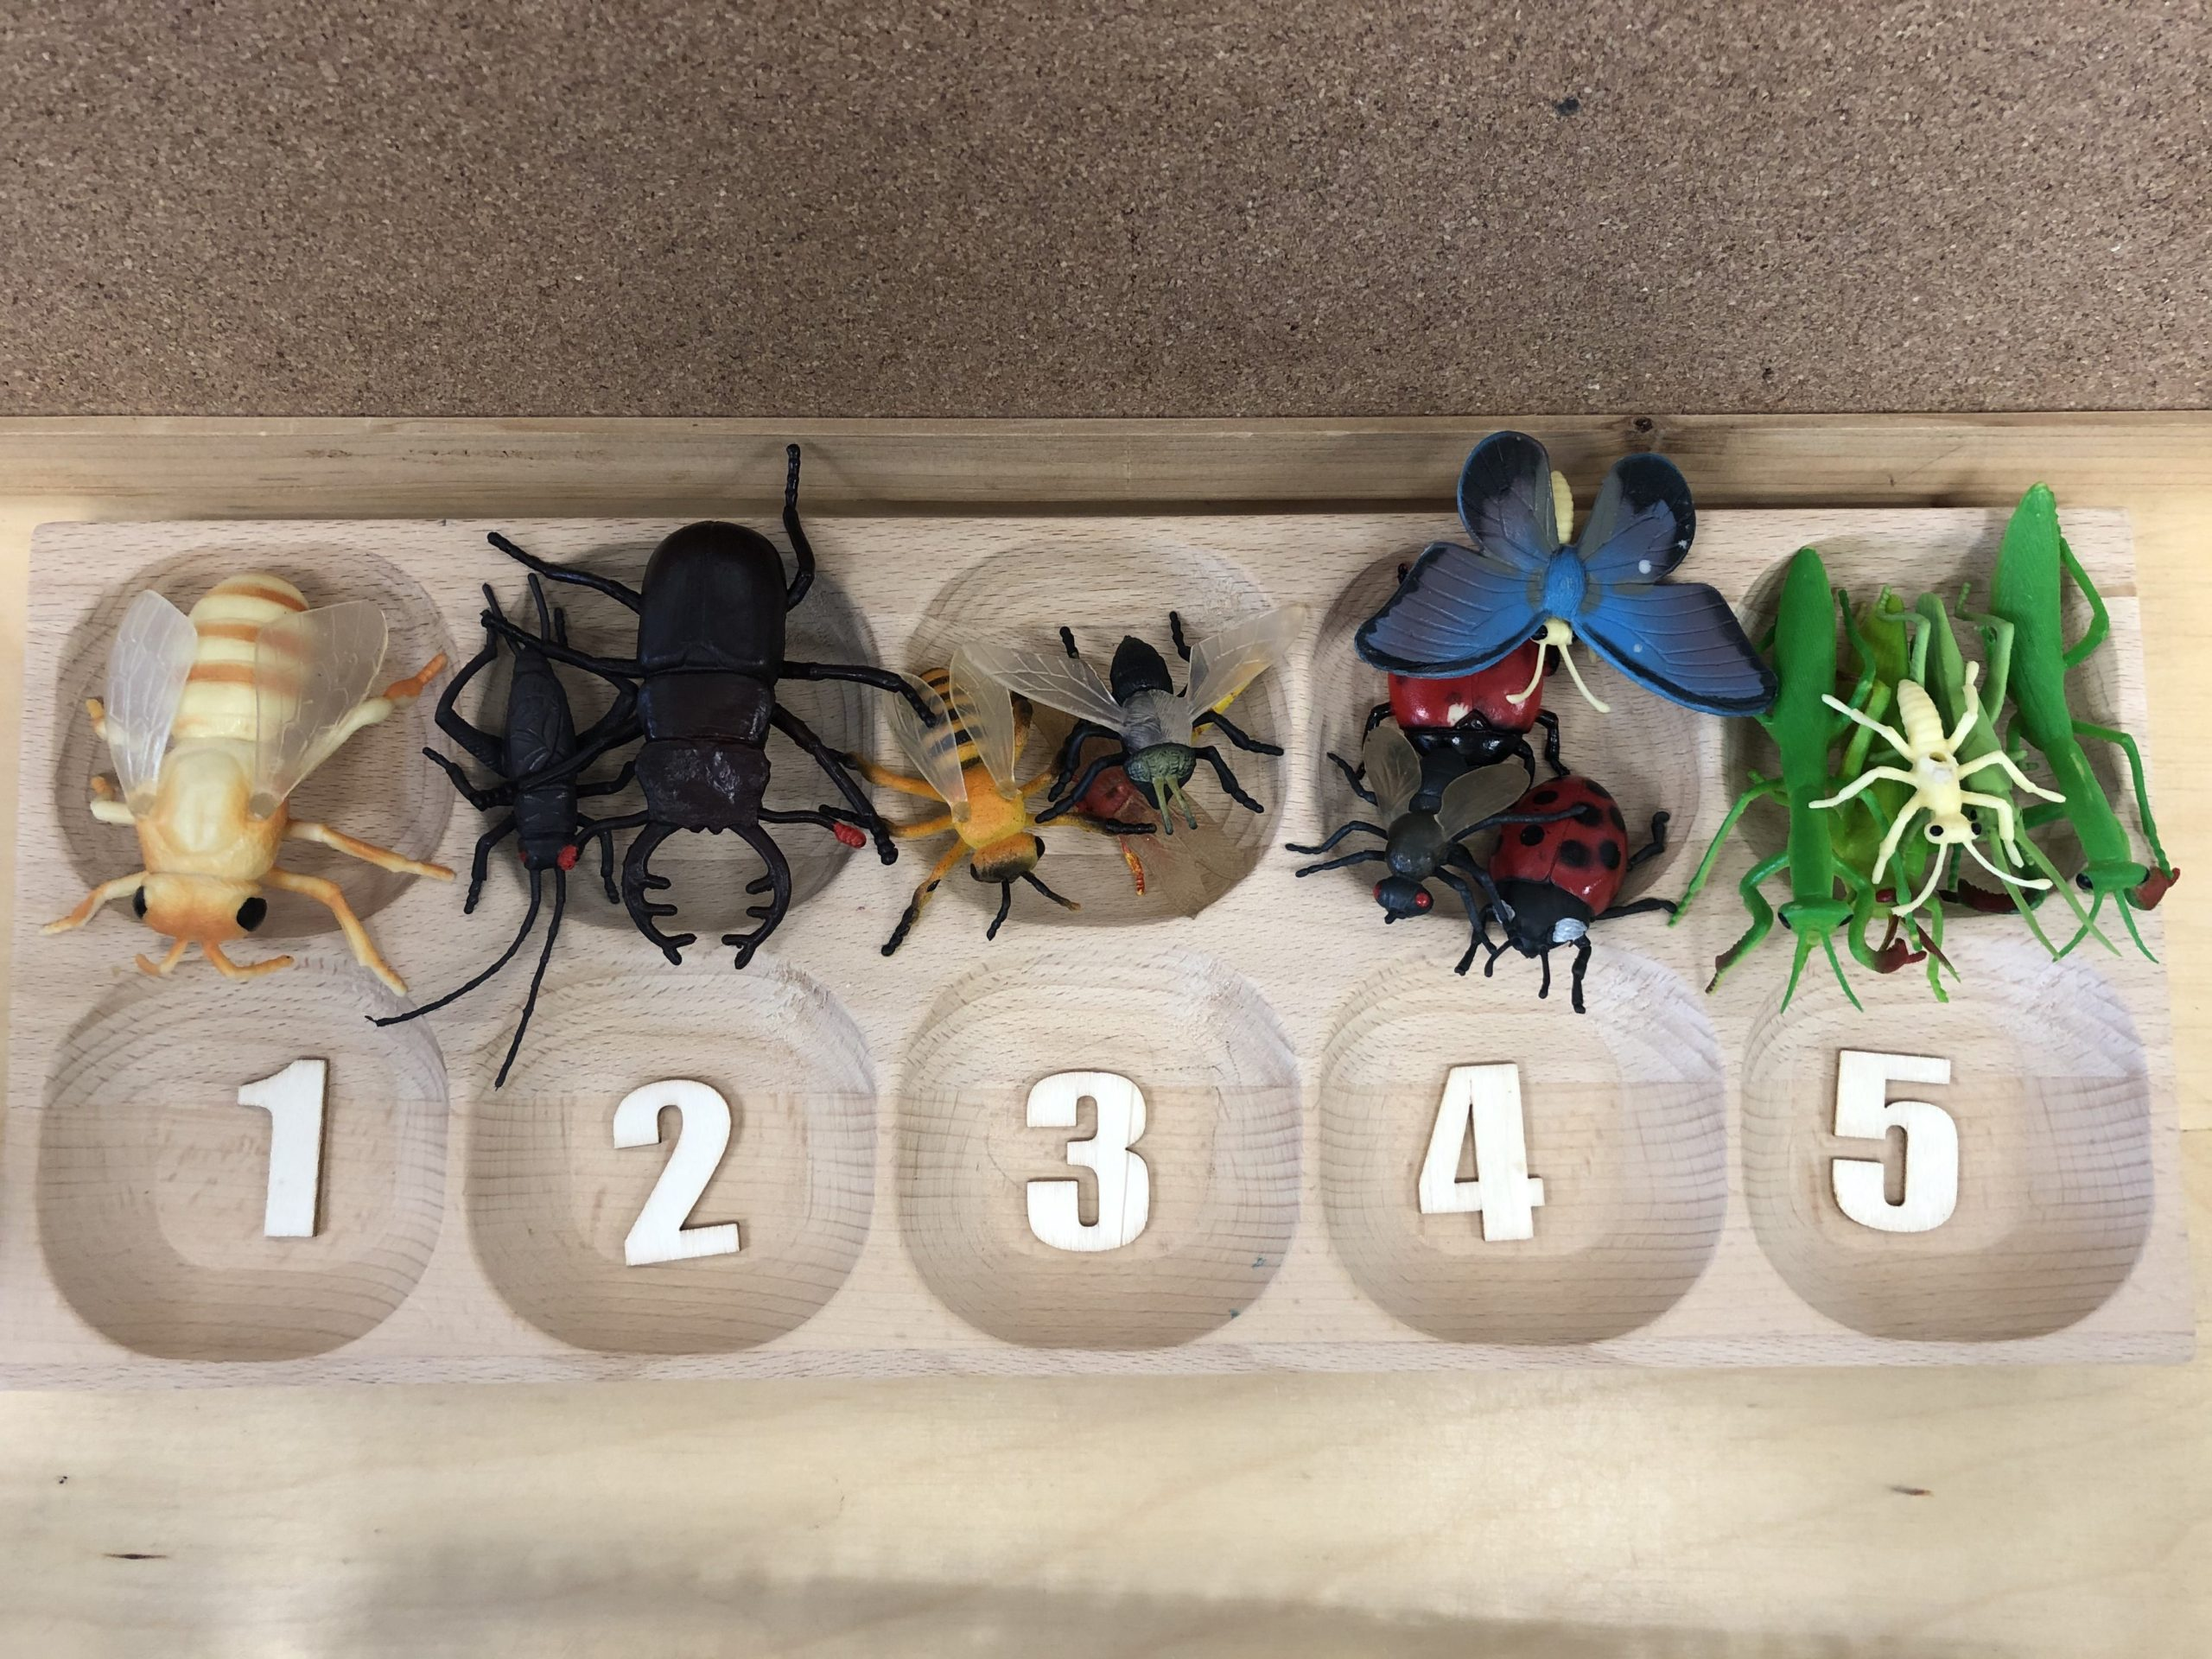 Our math centres were also dominated by insects as we worked on number recognition and subitizing. The insects made everything more fun.